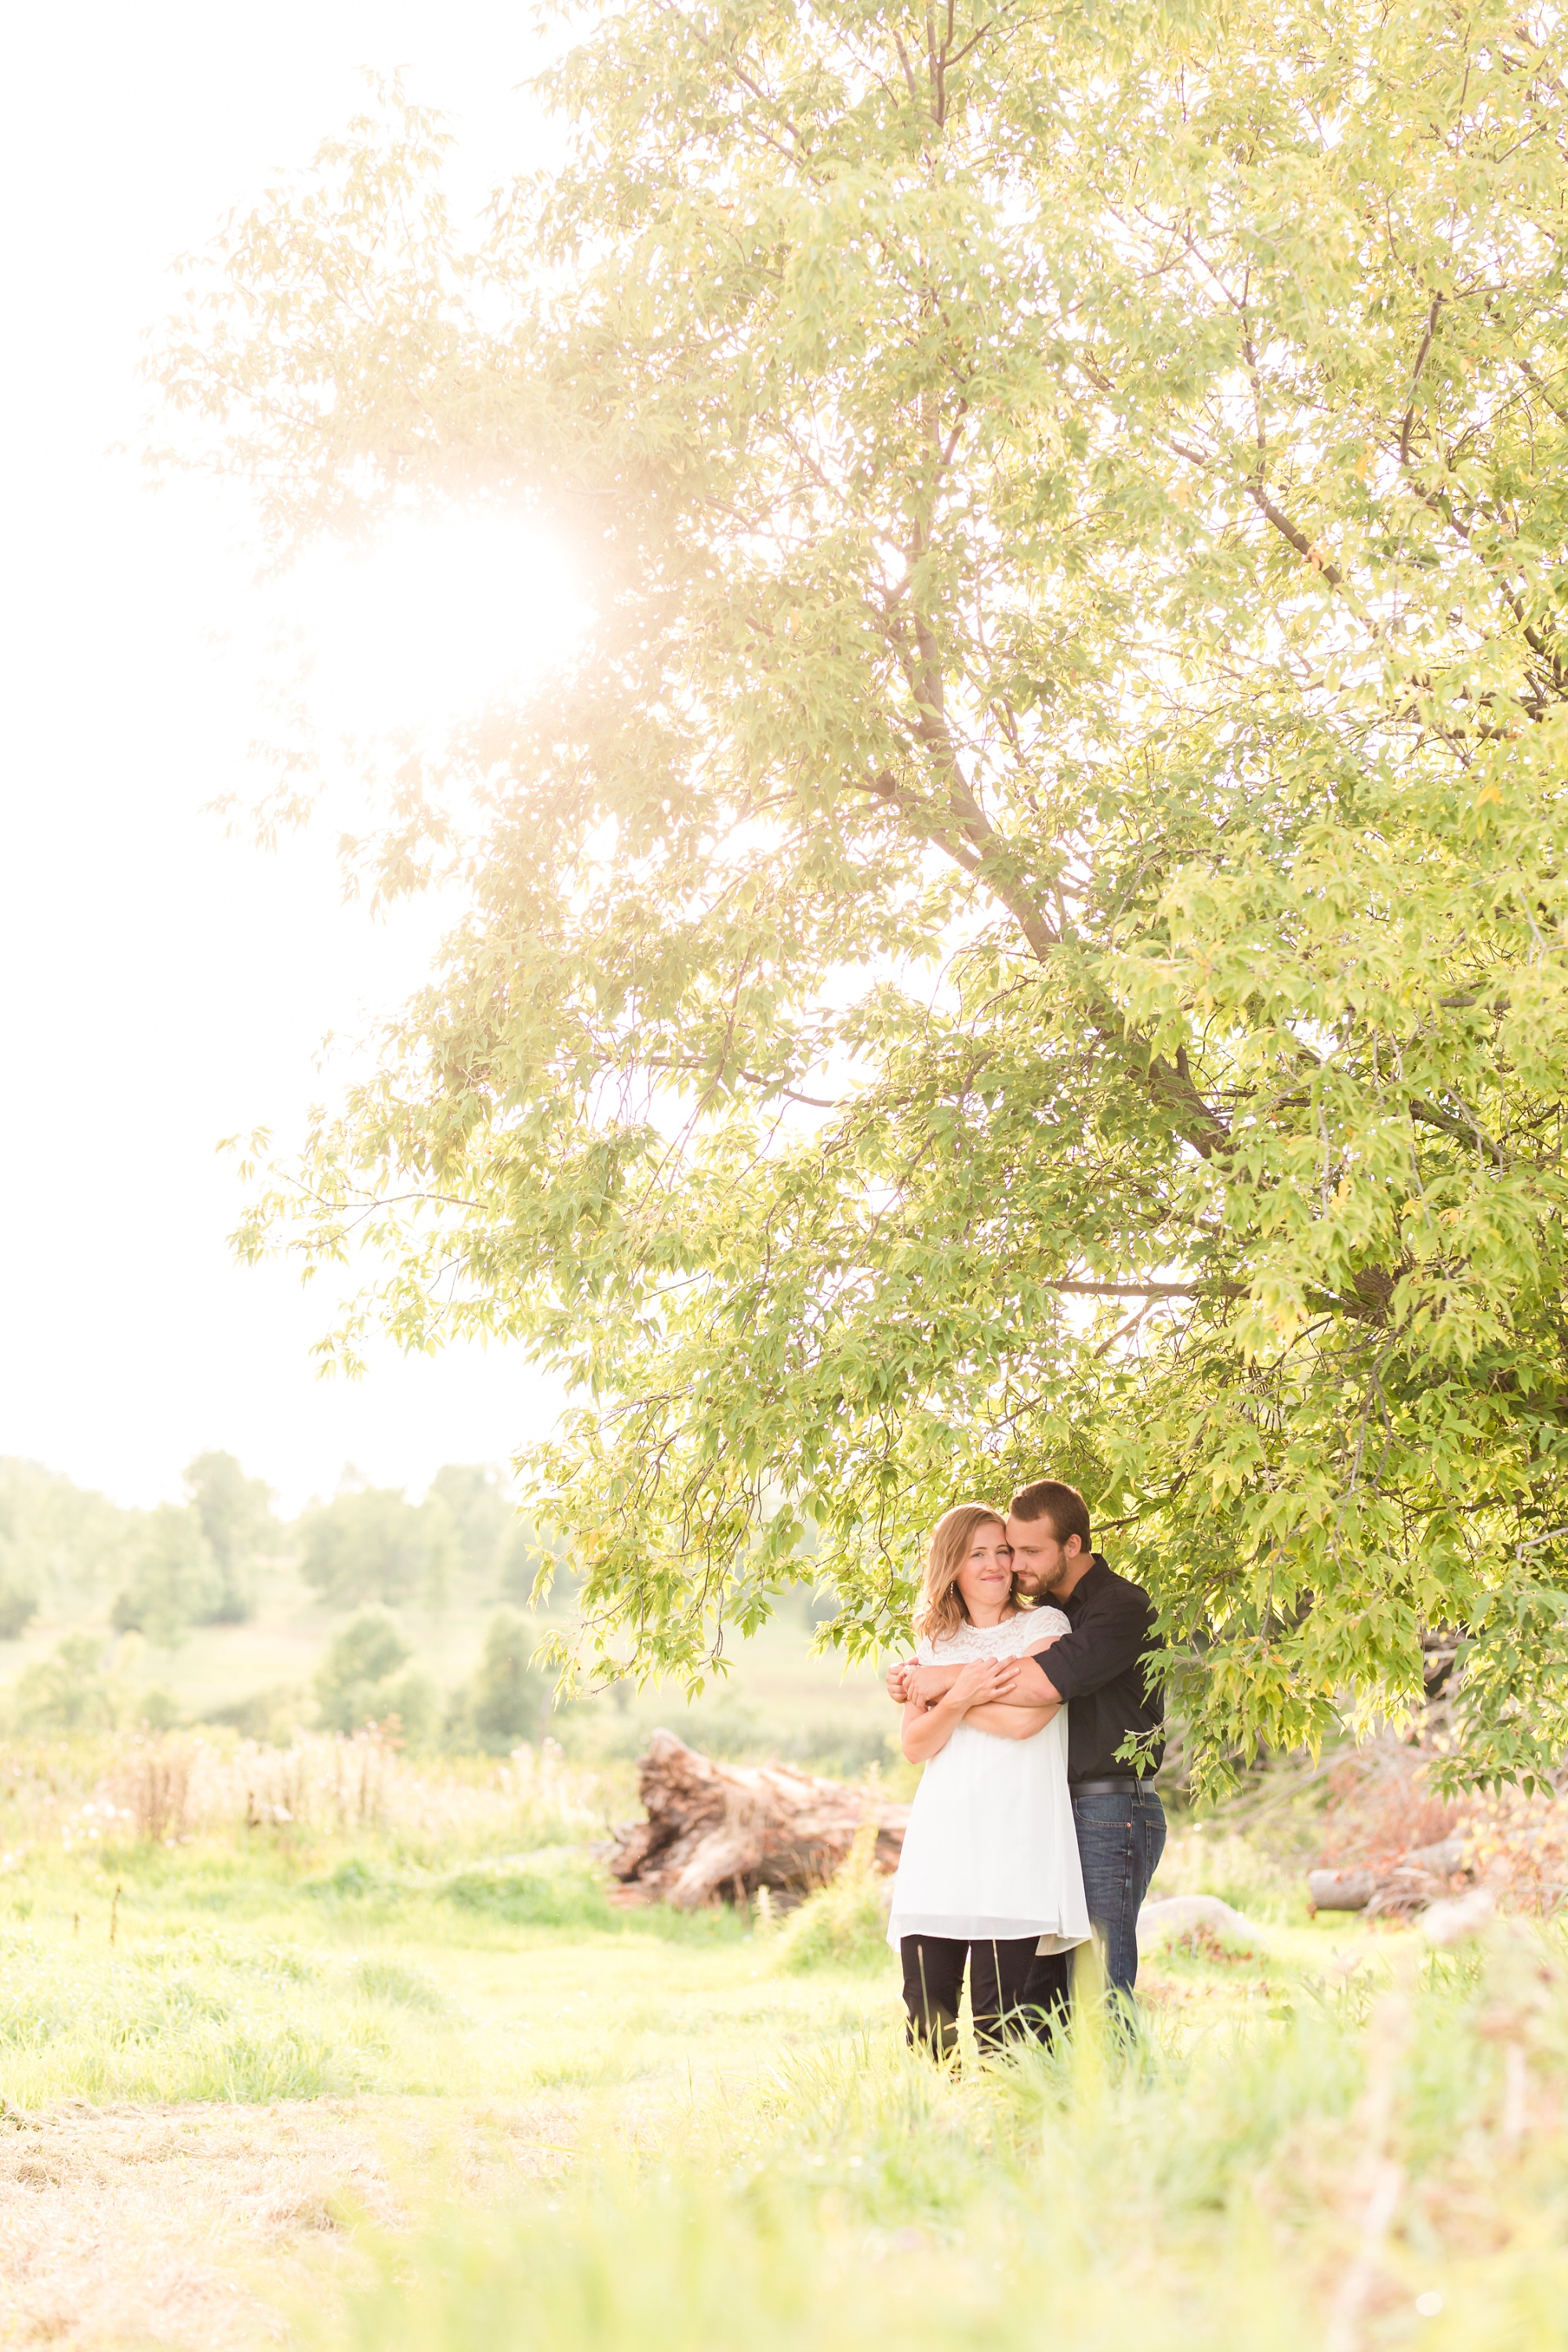 AmberLangerudPhotography_Countryside Engagement Session in Minnesota_3099.jpg